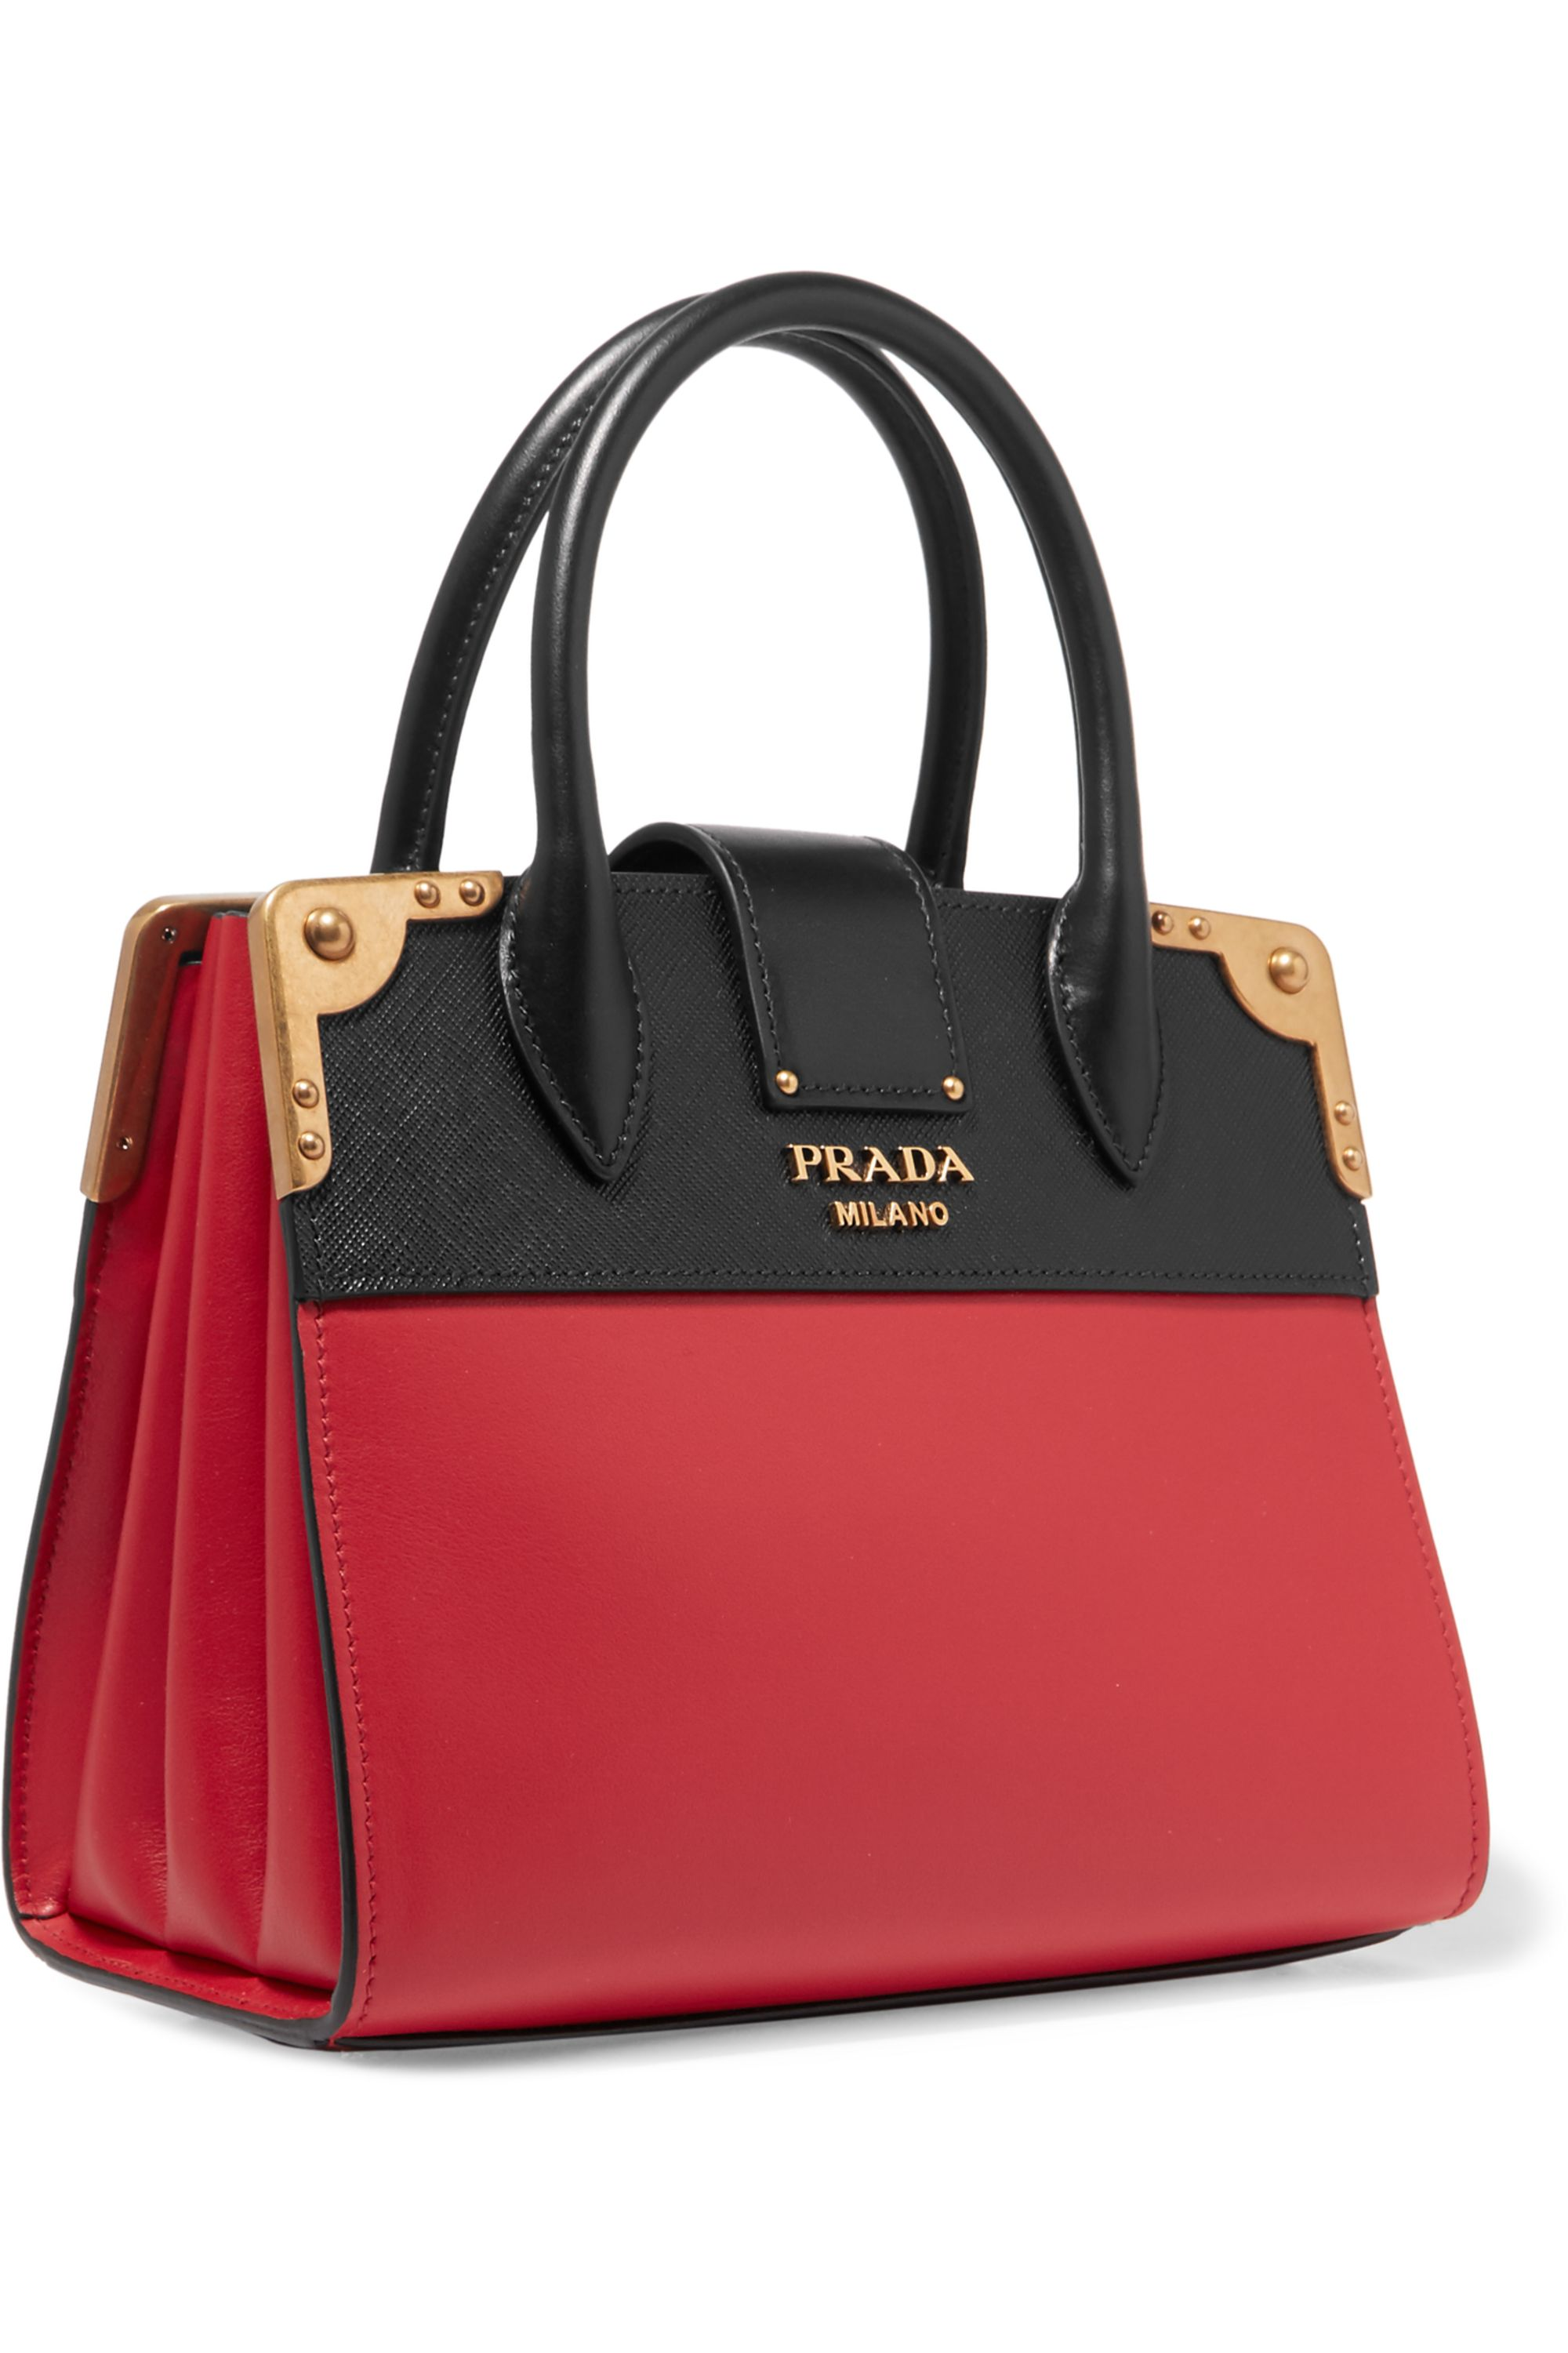 Prada Cahier small two-tone leather tote